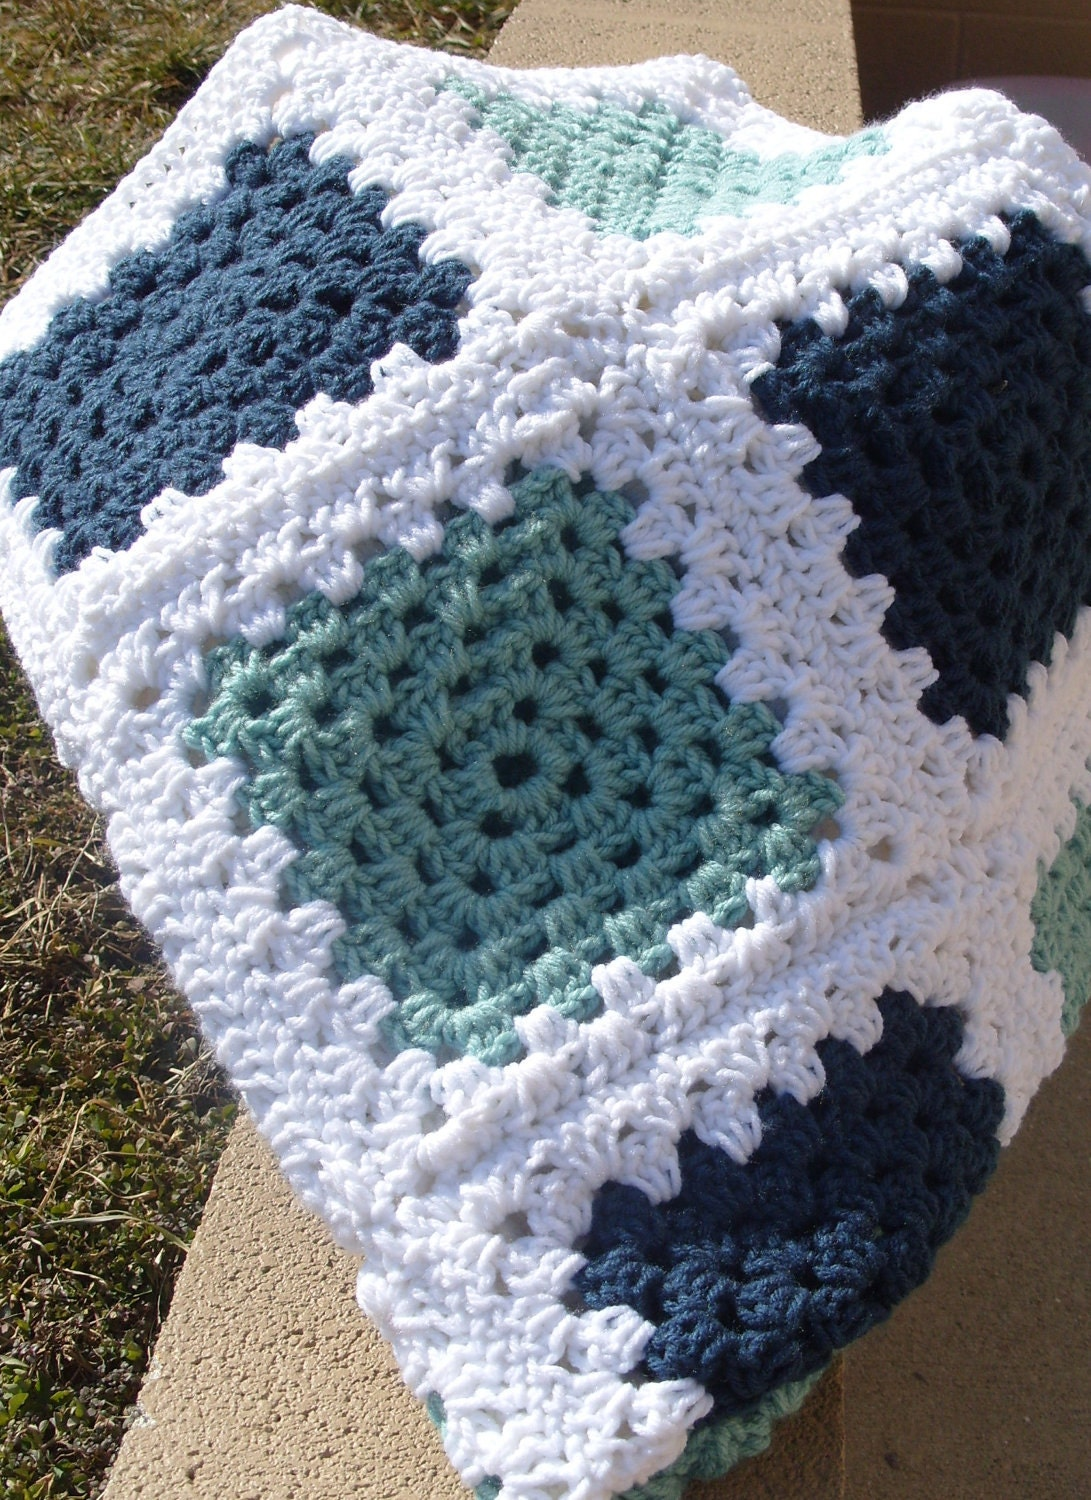 Green Crochet Afghan Pattern : Blue Green and White Granny Square Afghan by klickin2kneedles